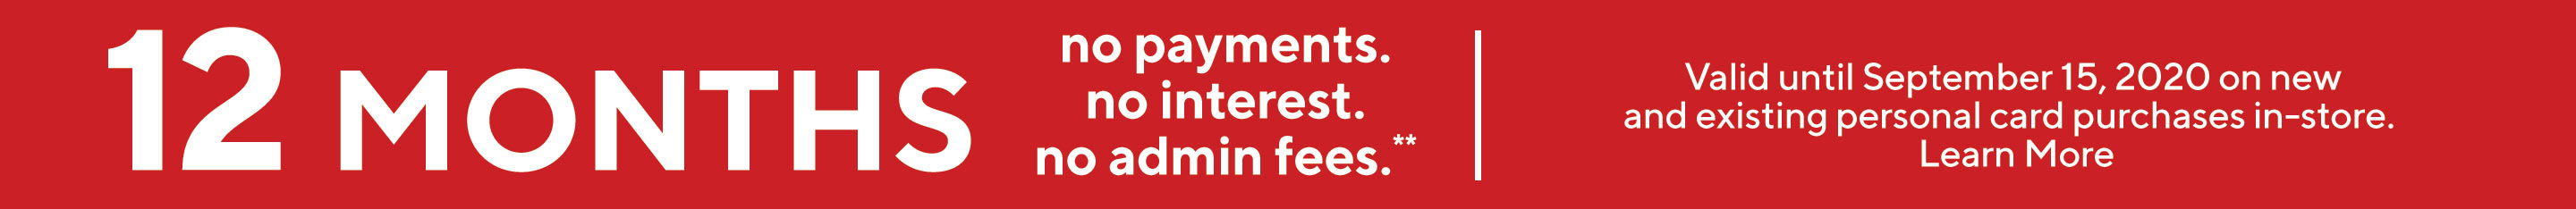 12 Months  No Payments. No Interest. No Admin Fees.